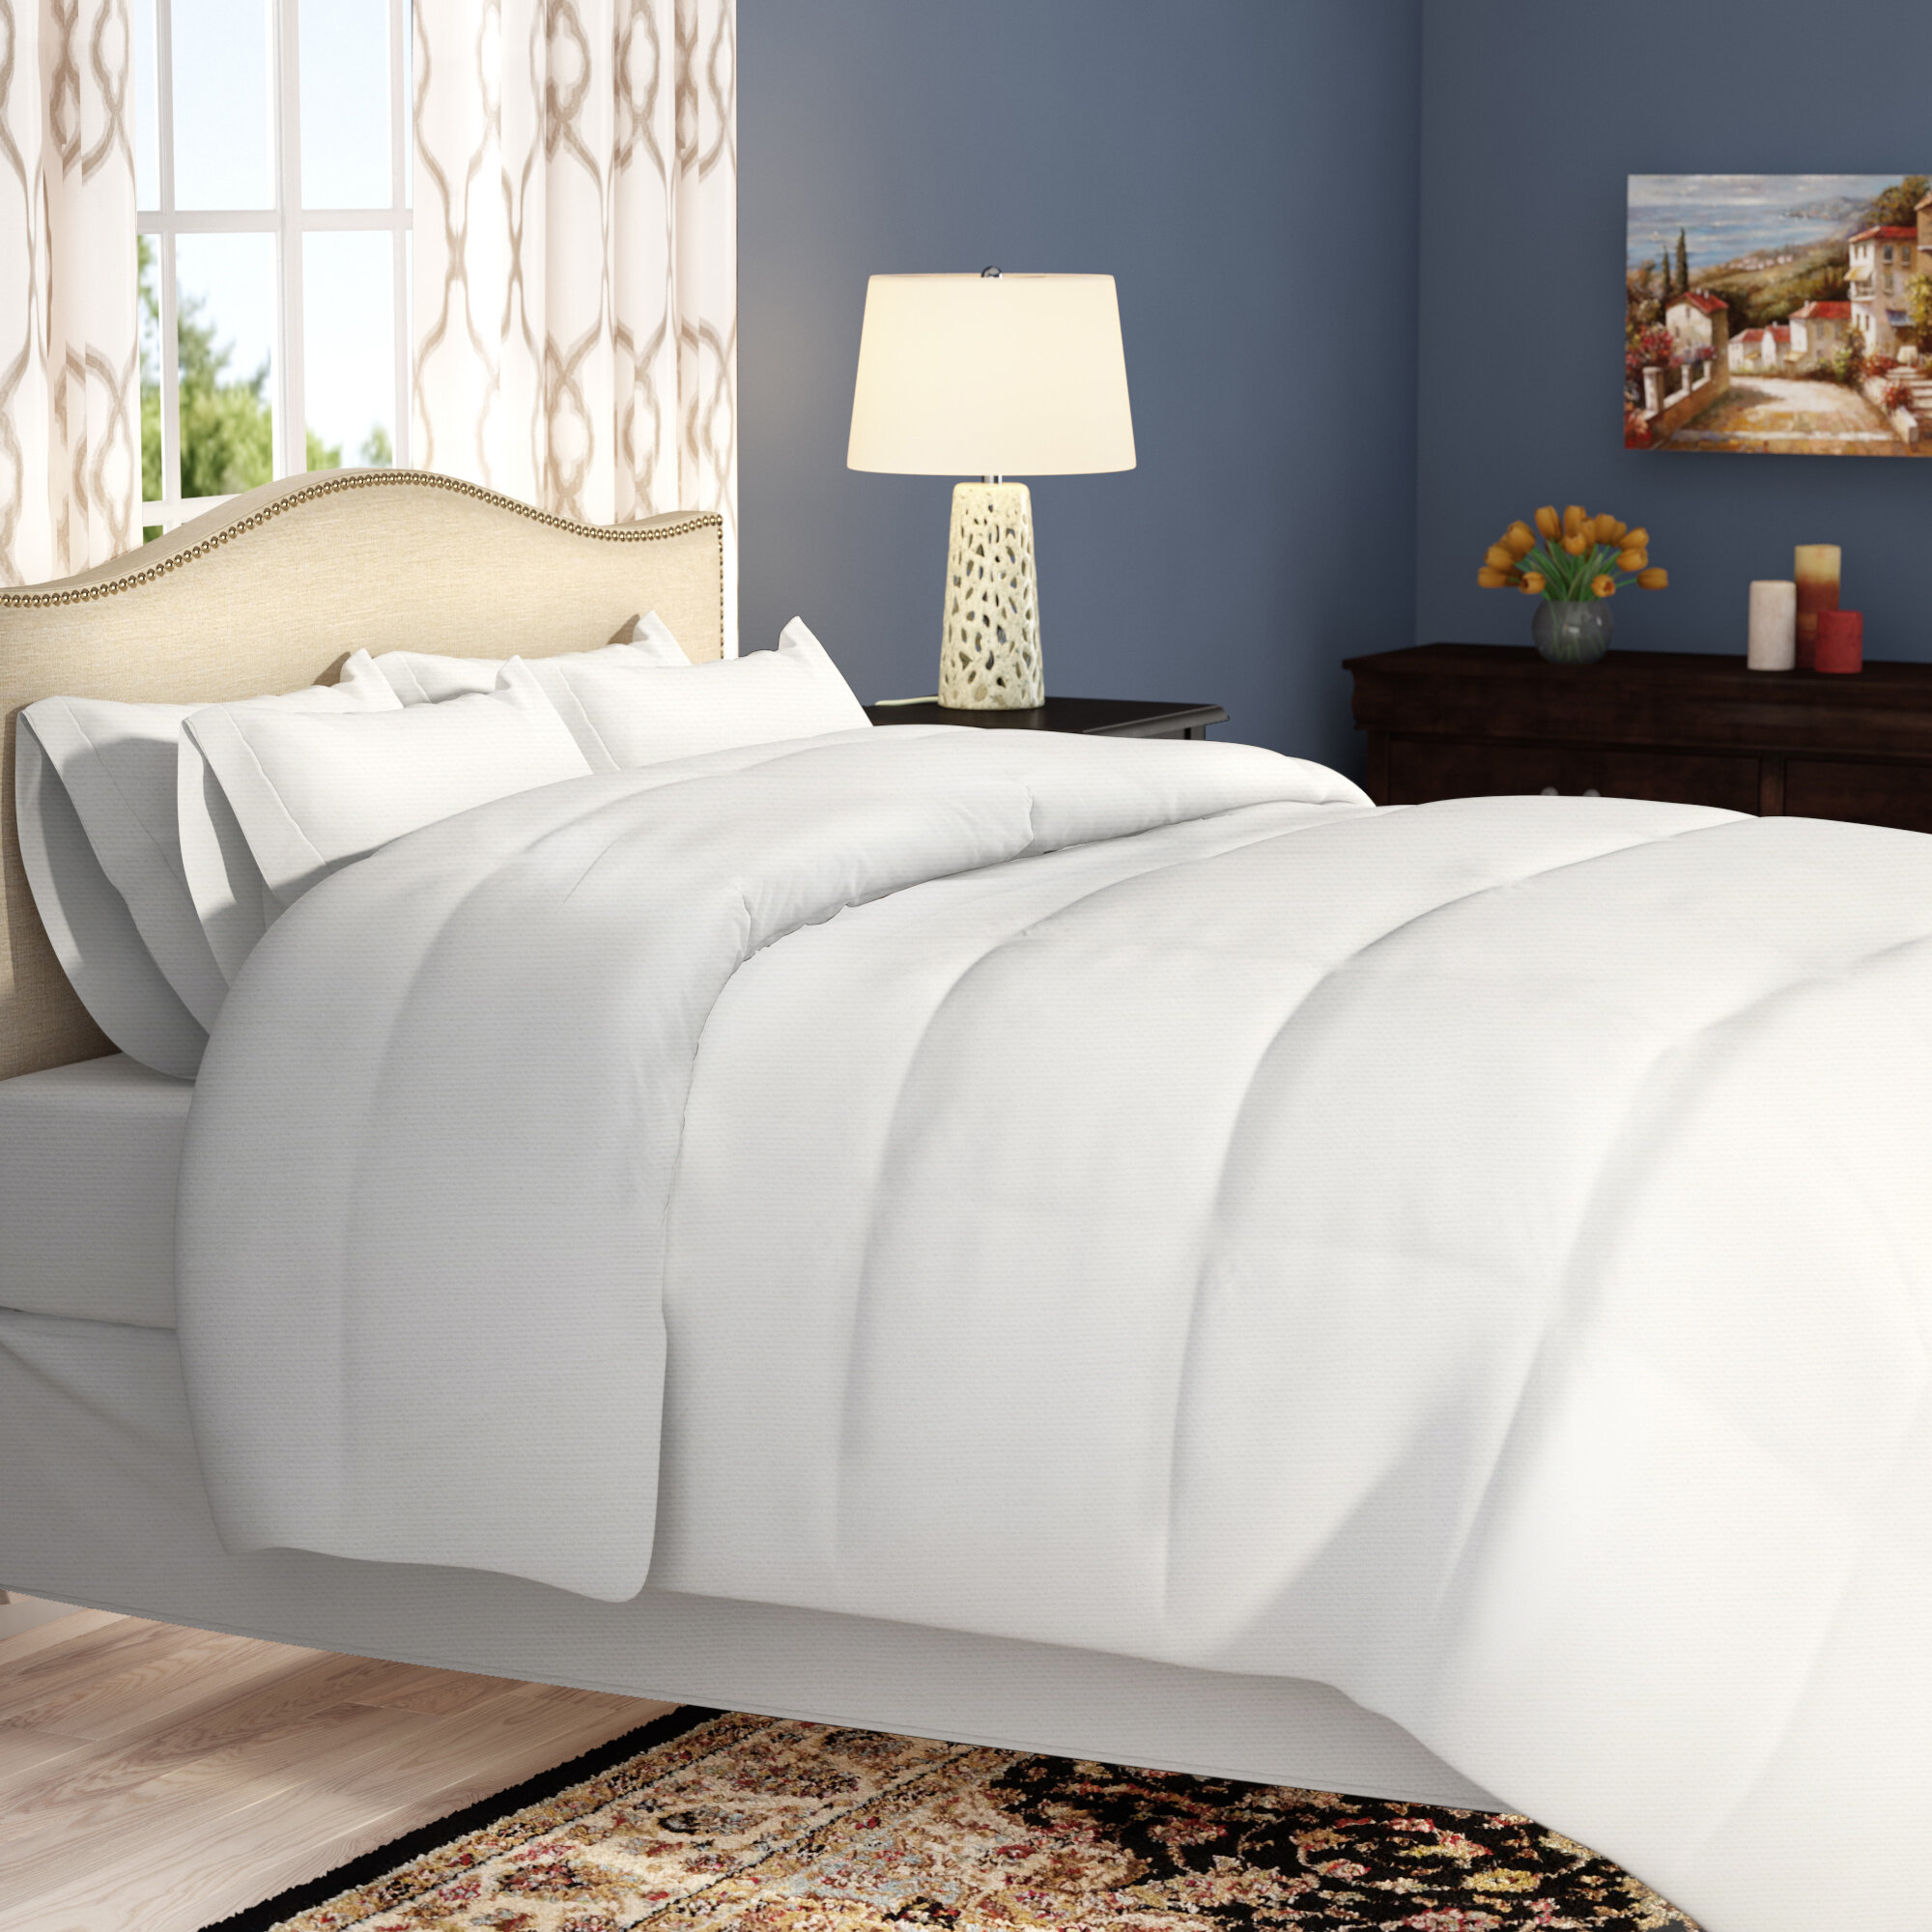 Wayfair White Yellow Gold Comforters Sets You Ll Love In 2021